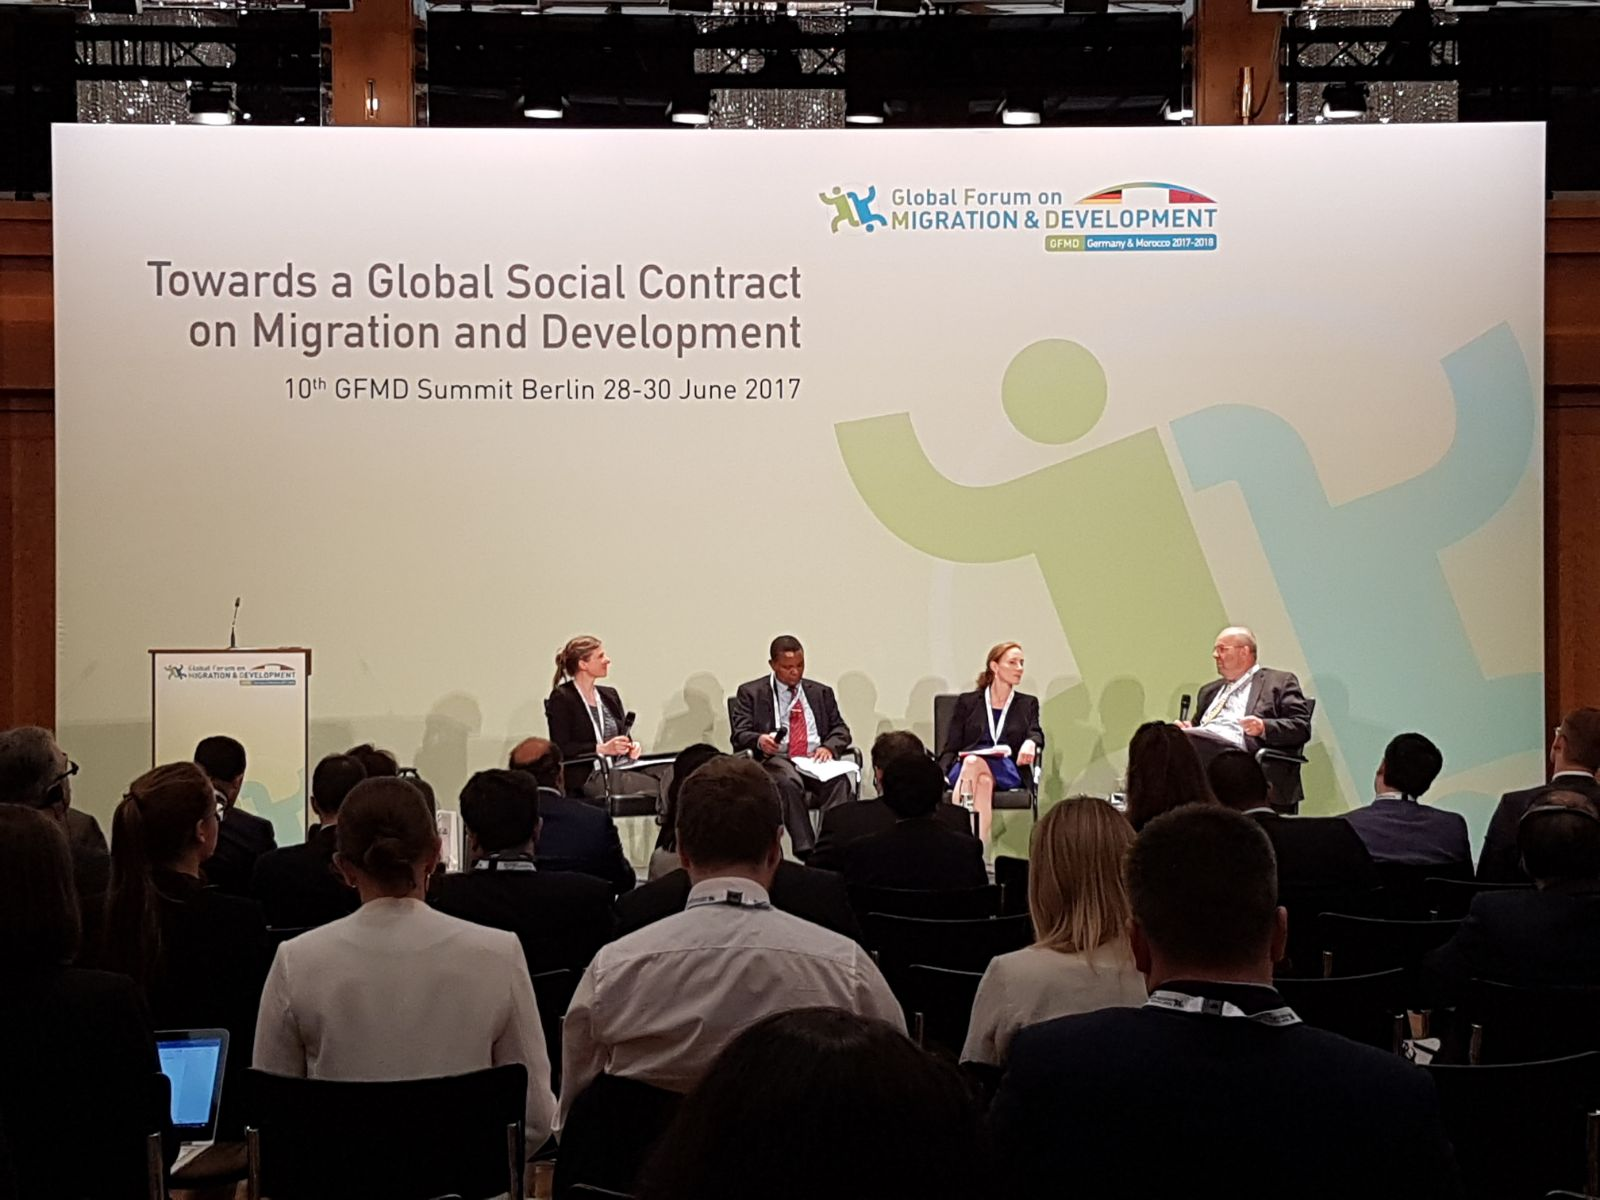 RT 2.1: #Displacement is not only a humanitarian, but also a #development challenge, especially for those countries left behind. #GFMD10 https://t.co/xqgpjSnquR